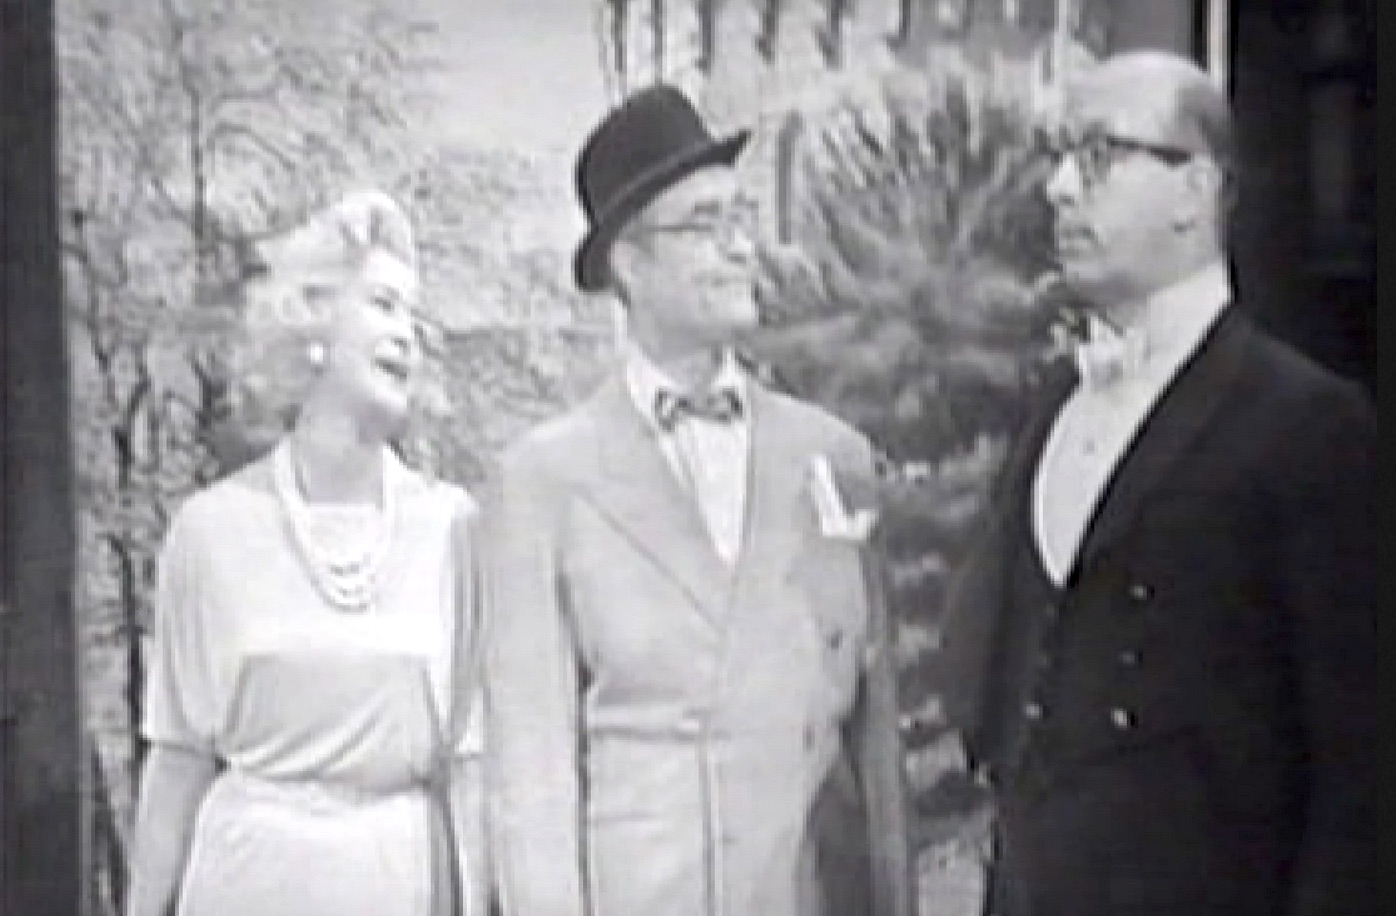 Appleby's Castle - with Marilyn Maxwell, Red Skelton as George Appleby, and Richard Deacon